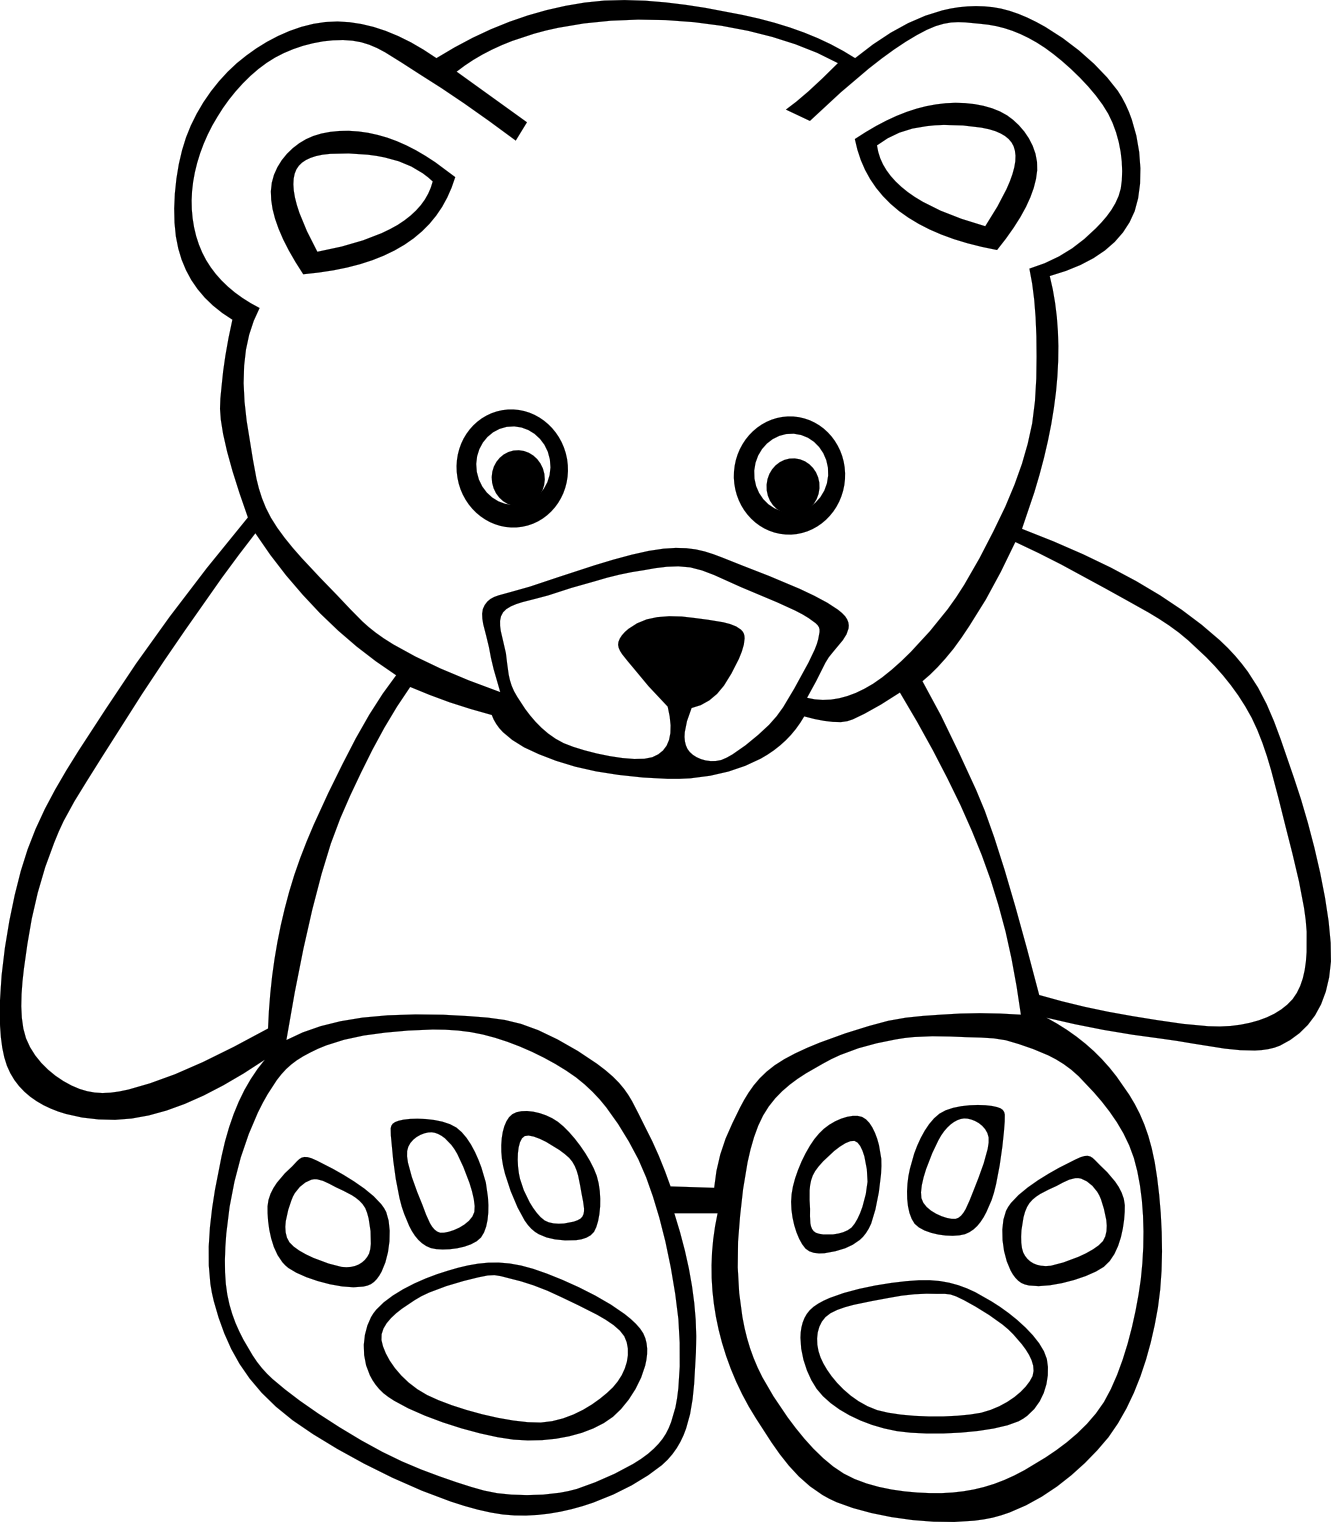 Clip Art Clip Art Black And White square clip art black and white clipart panda free images